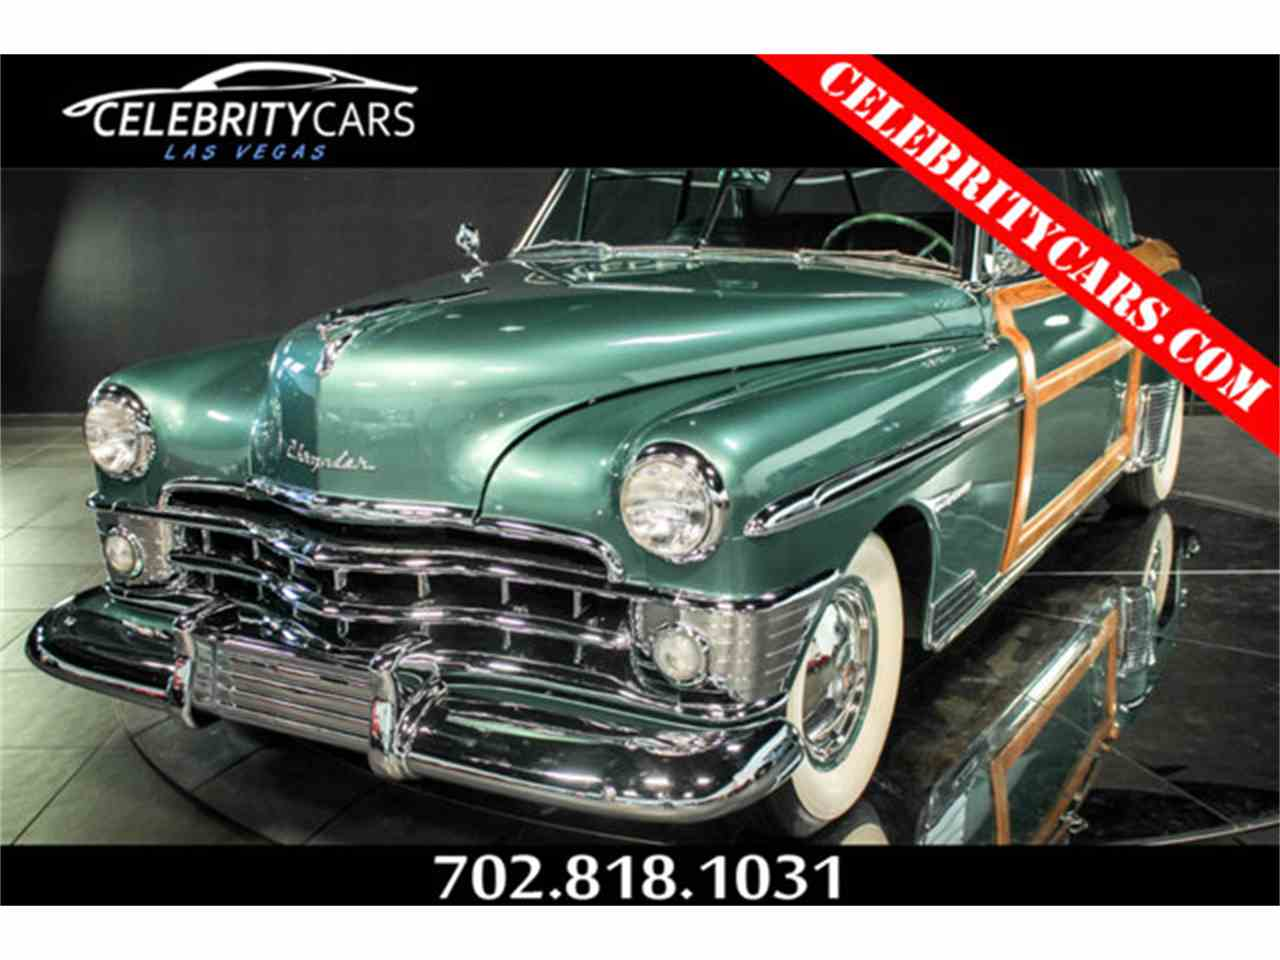 Large Picture of Classic '50 Chrysler Town & Country located in Las Vegas Nevada - $58,750.00 - LVQU